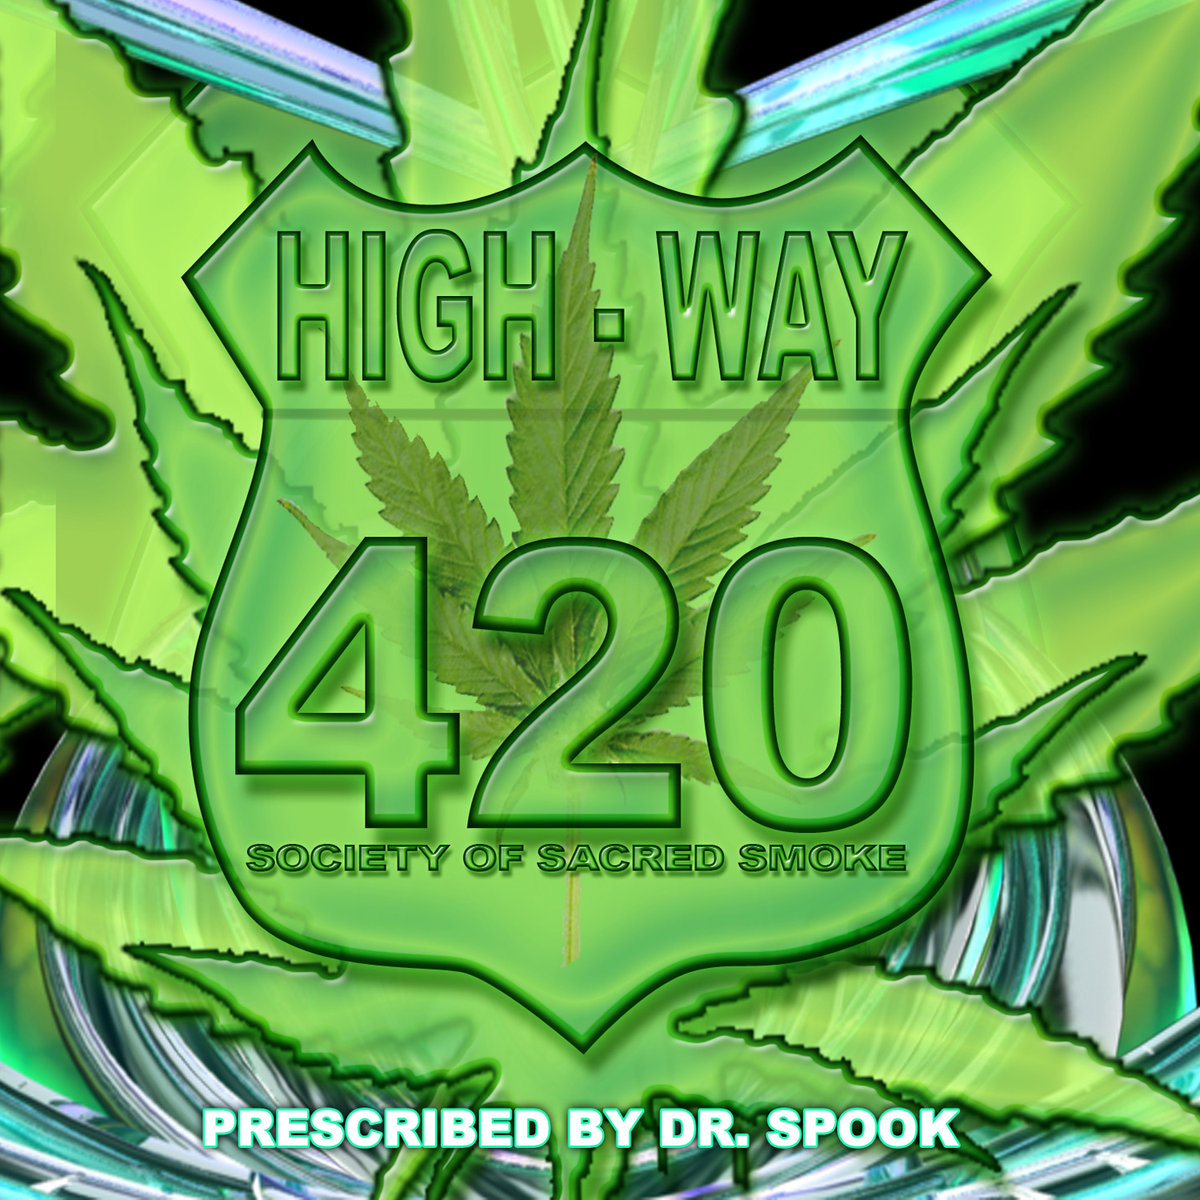 Phoenix Family - Chronic Tonic @ 'Various Artists - High-Way 420: Society Of Sacred Smoke (Prescribed by Dr. Spook)' album (electronic, goa)